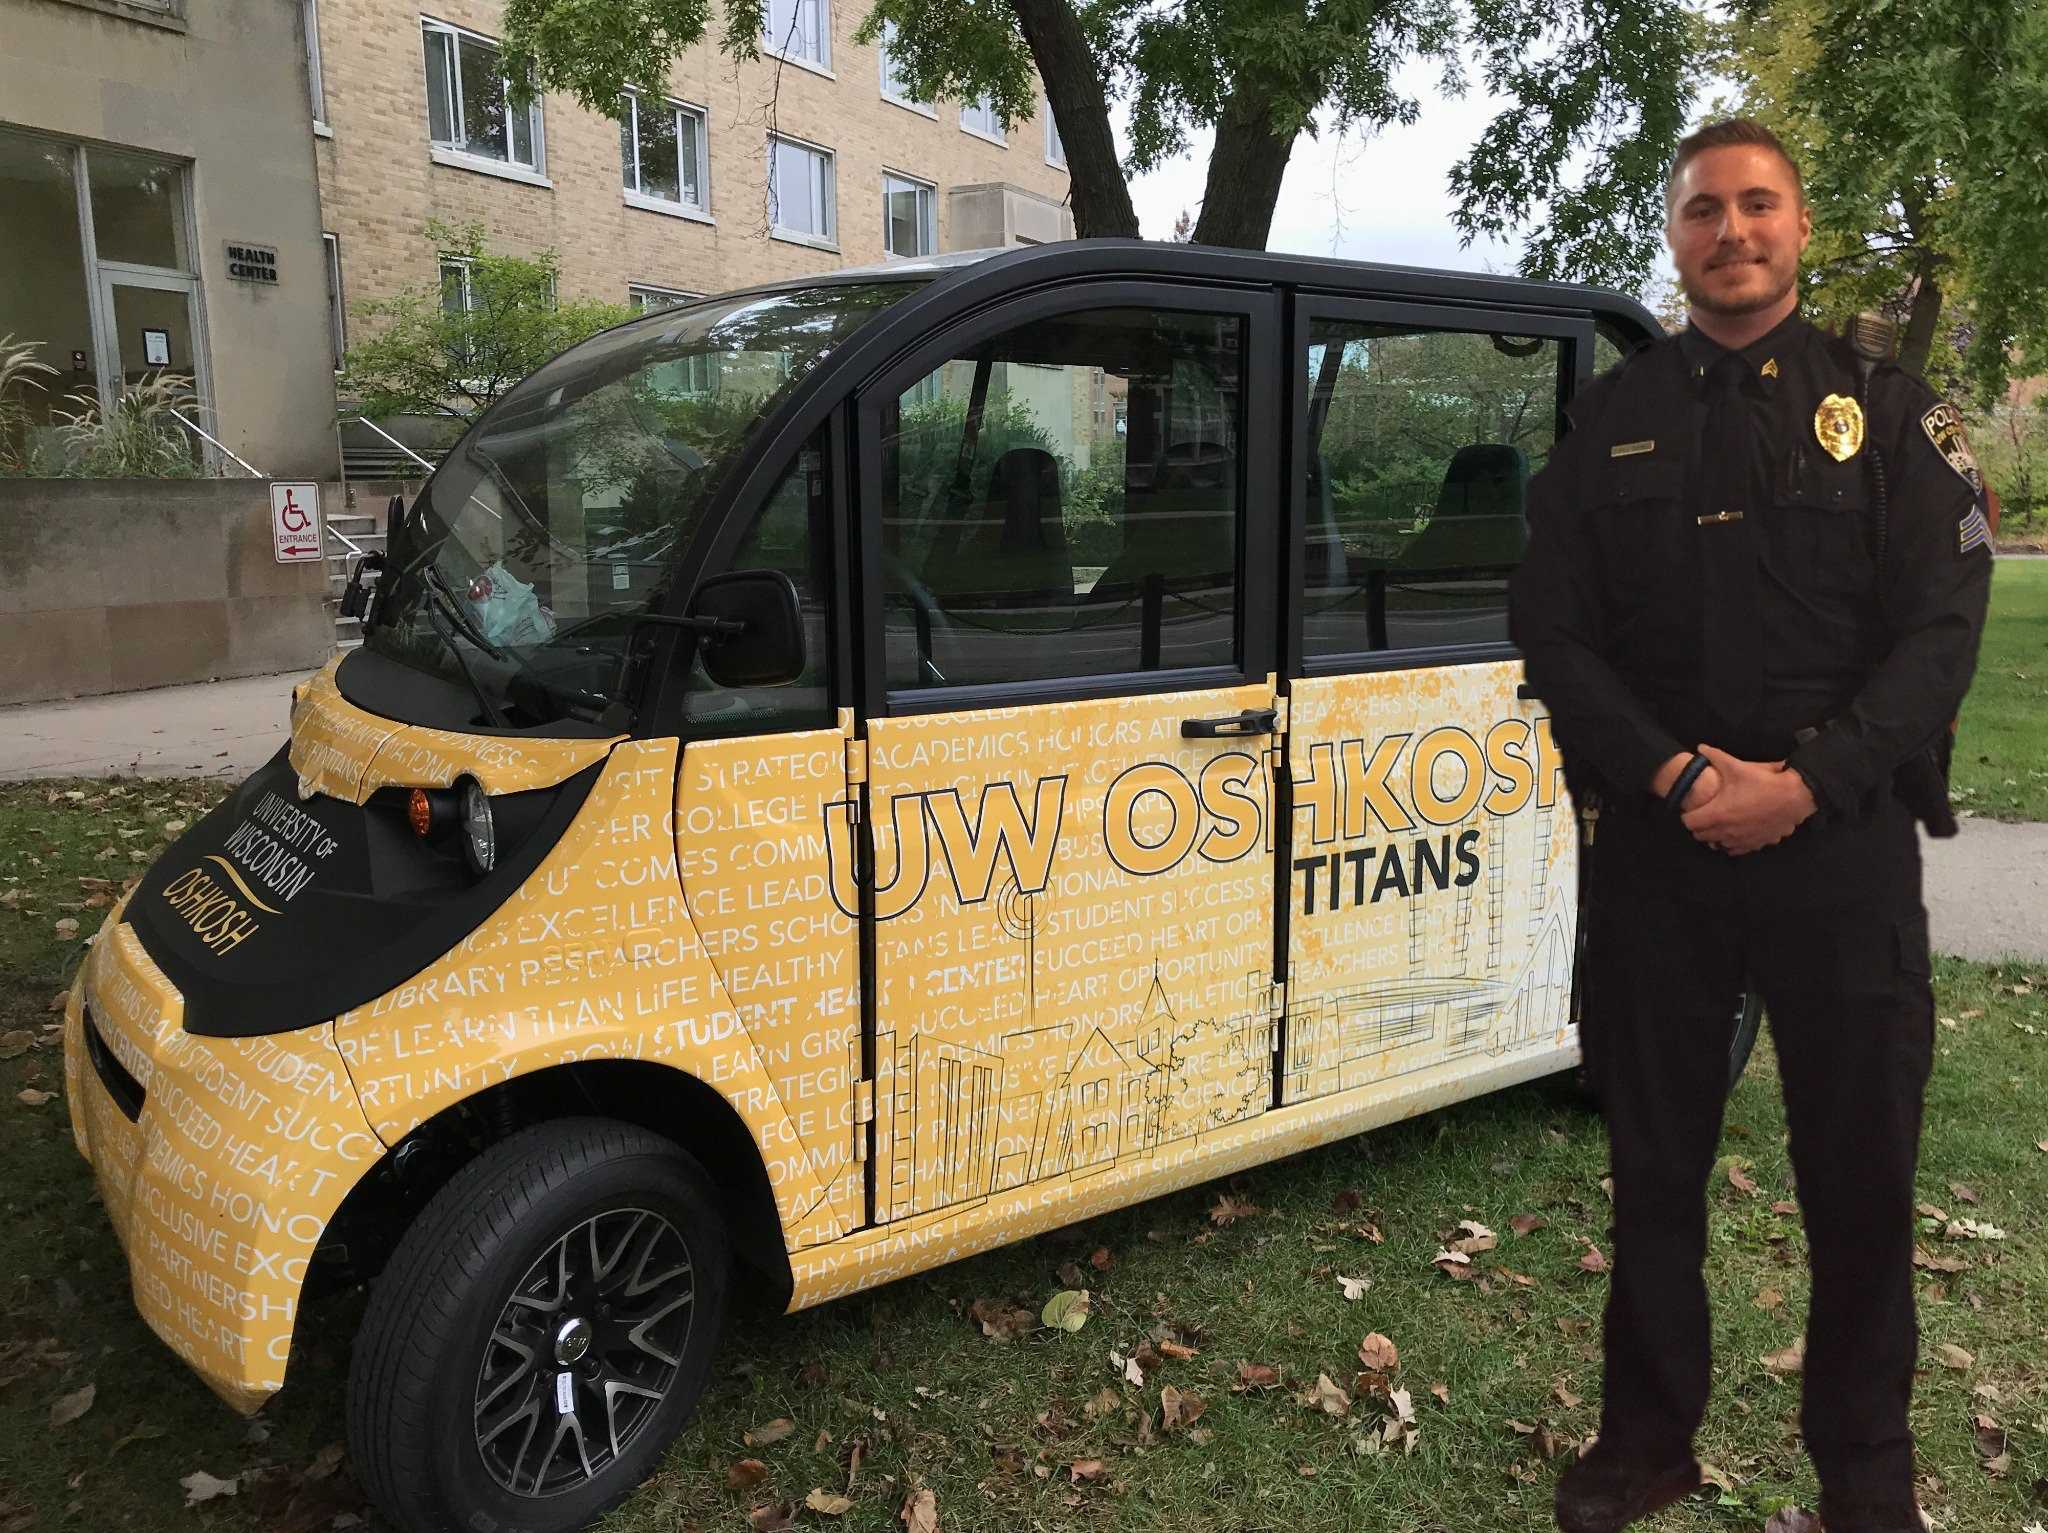 Safety Shuttle aims to make campus safer, more efficient